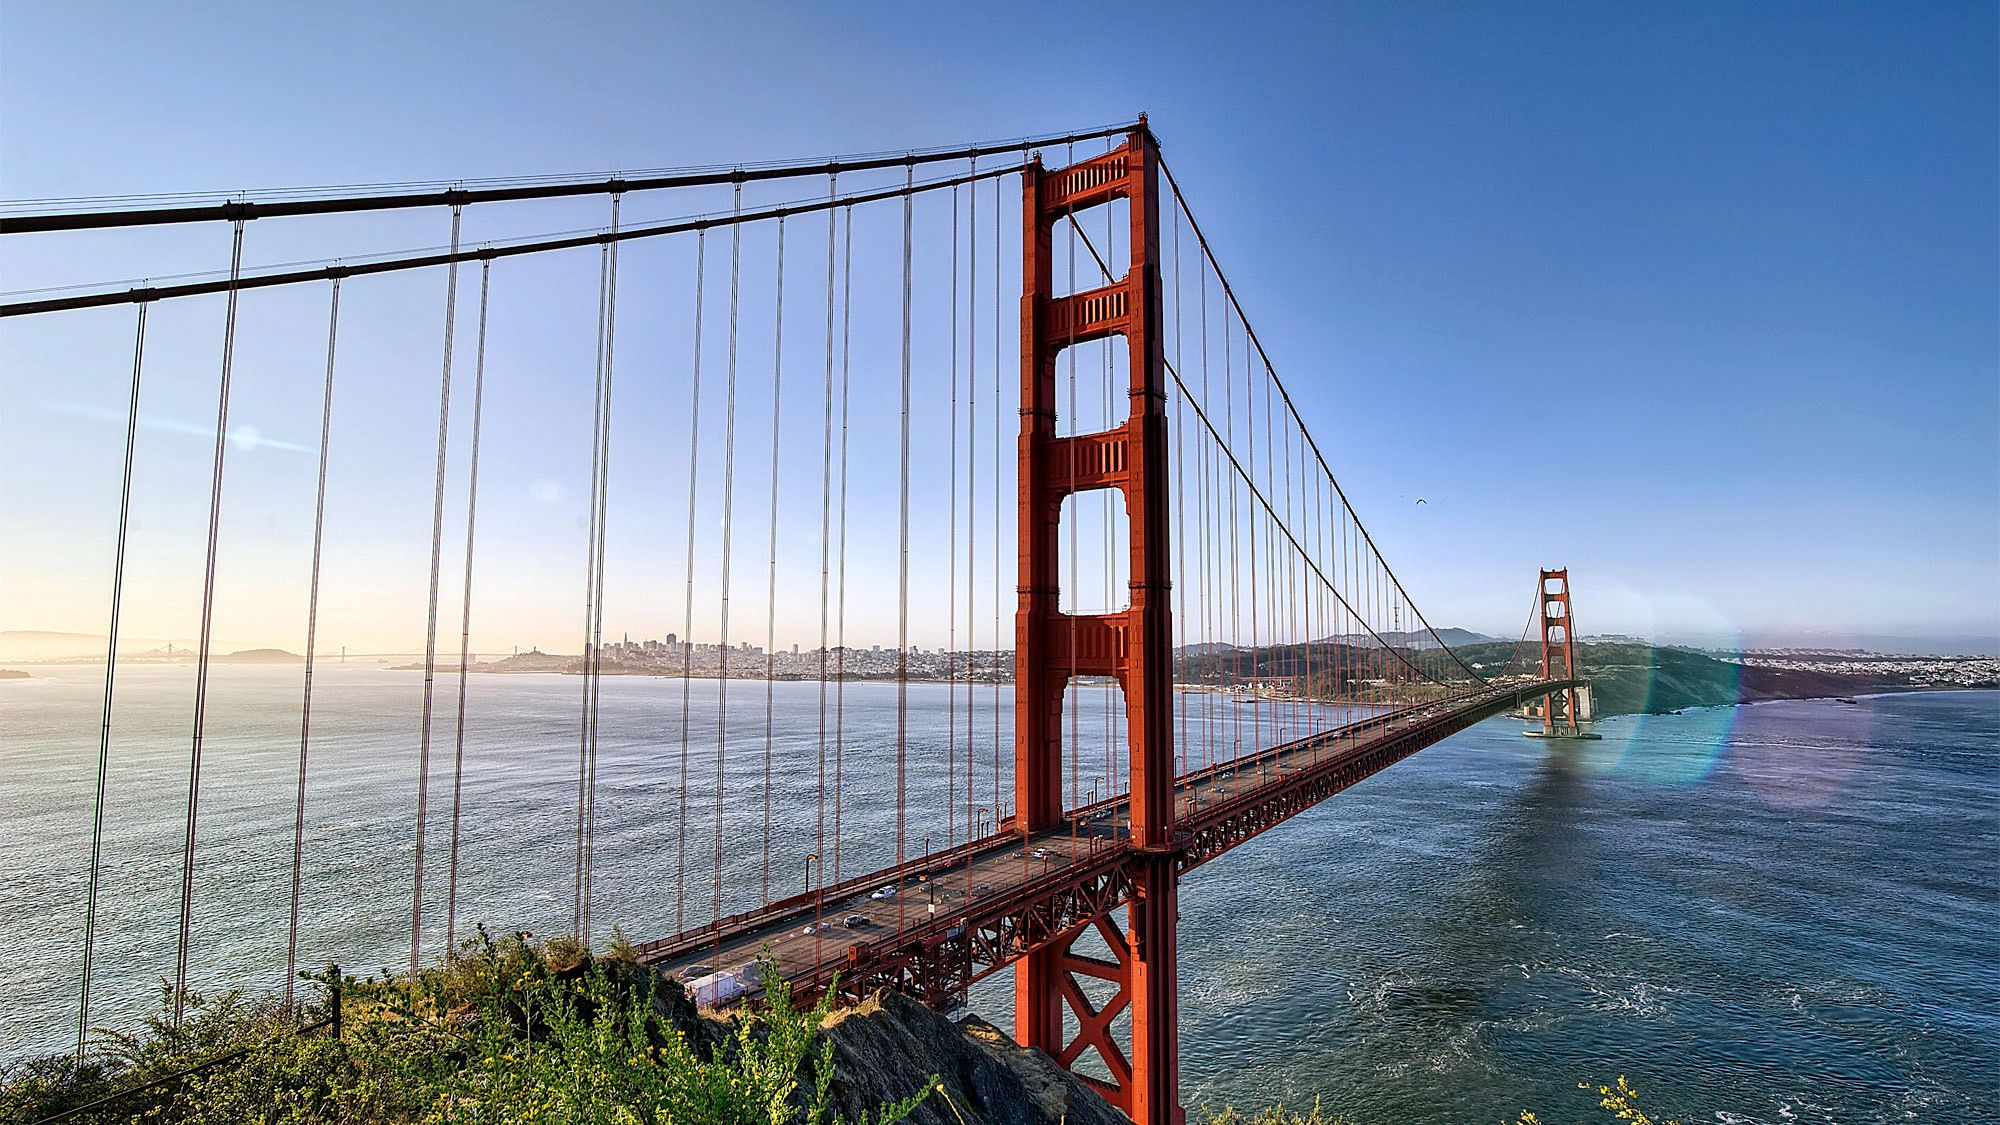 Stunning view of the Golden Gate Bridge on a clear day in San Francisco